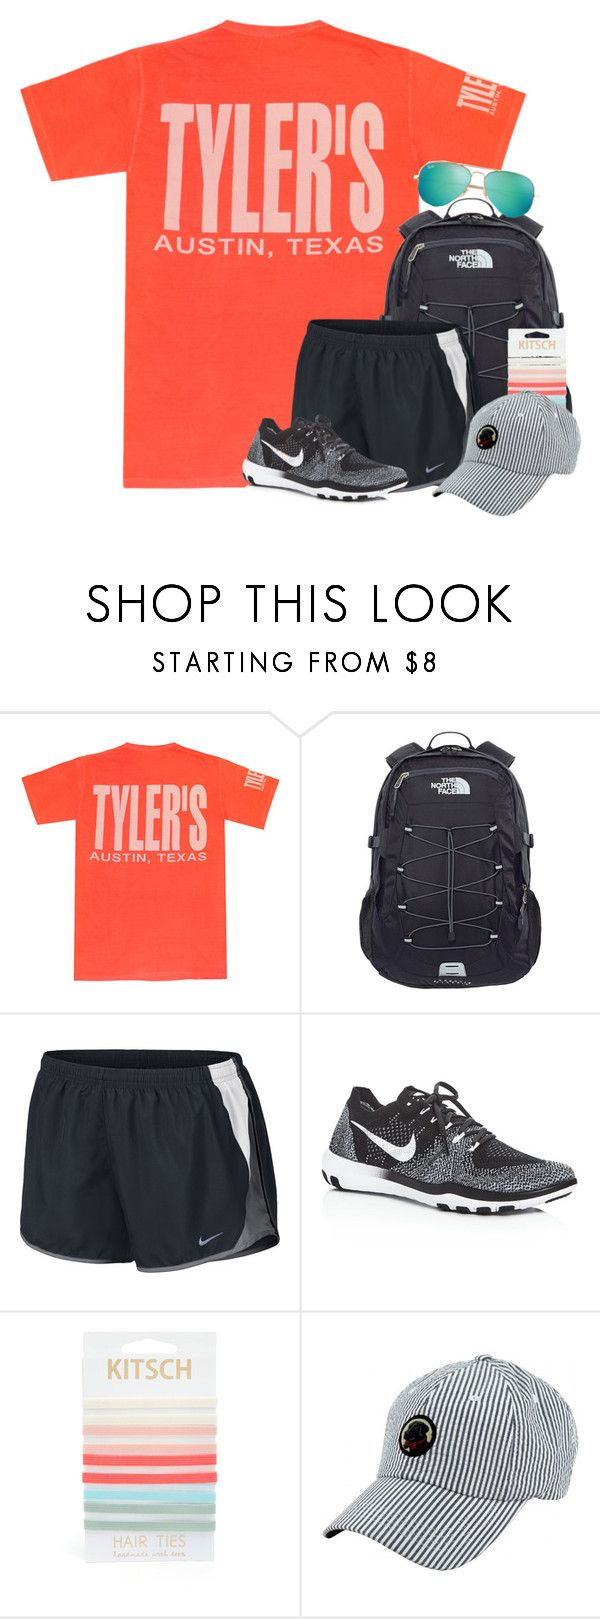 """""""Summer Travels Contest!"""" by amberfmillard-1 ❤ liked on Polyvore featuring CC, The North Face, NIKE, Kitsch, Southern Proper and Ray-Ban"""